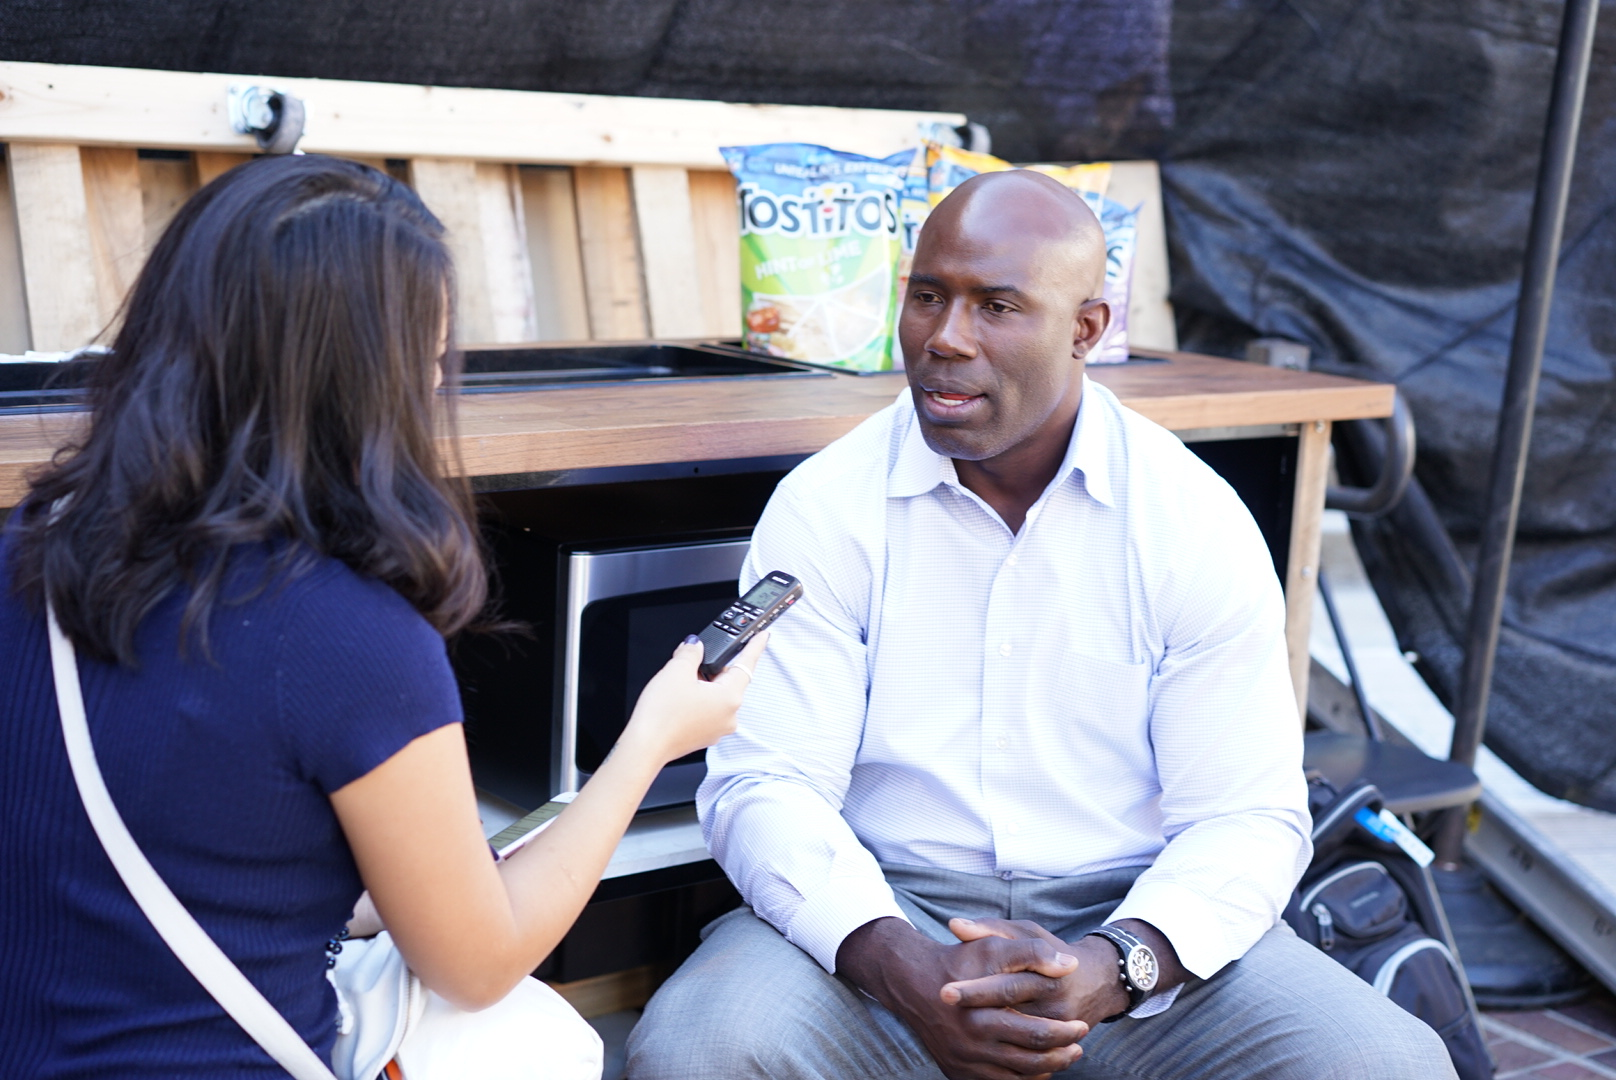 Terrell Davis reveals his thoughts on tonight's Broncos game - As published by 303 Magazine. Read the full story here.